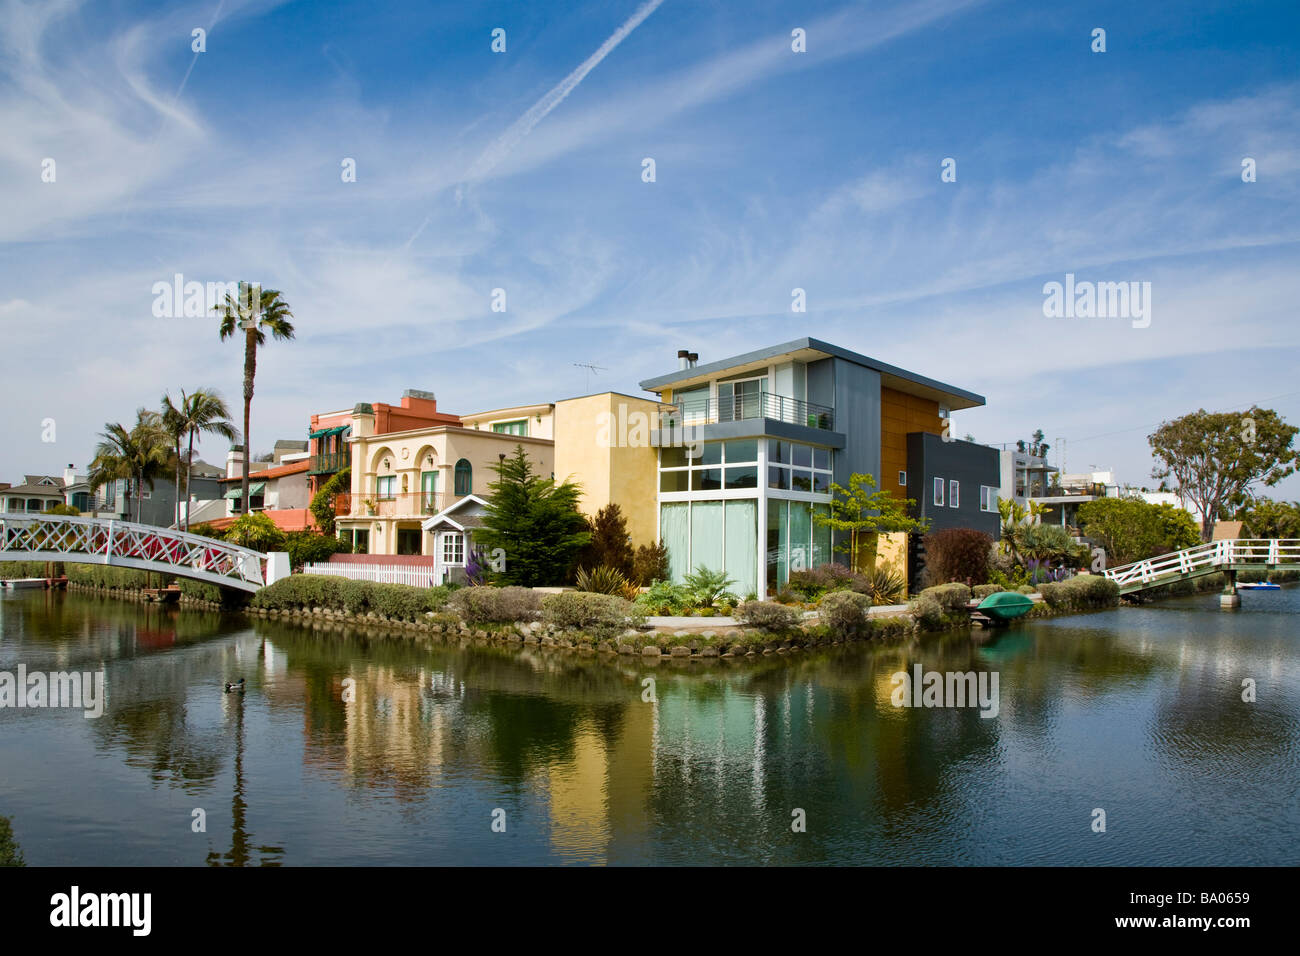 venice canals los angeles stockfotos venice canals los angeles bilder seite 2 alamy. Black Bedroom Furniture Sets. Home Design Ideas